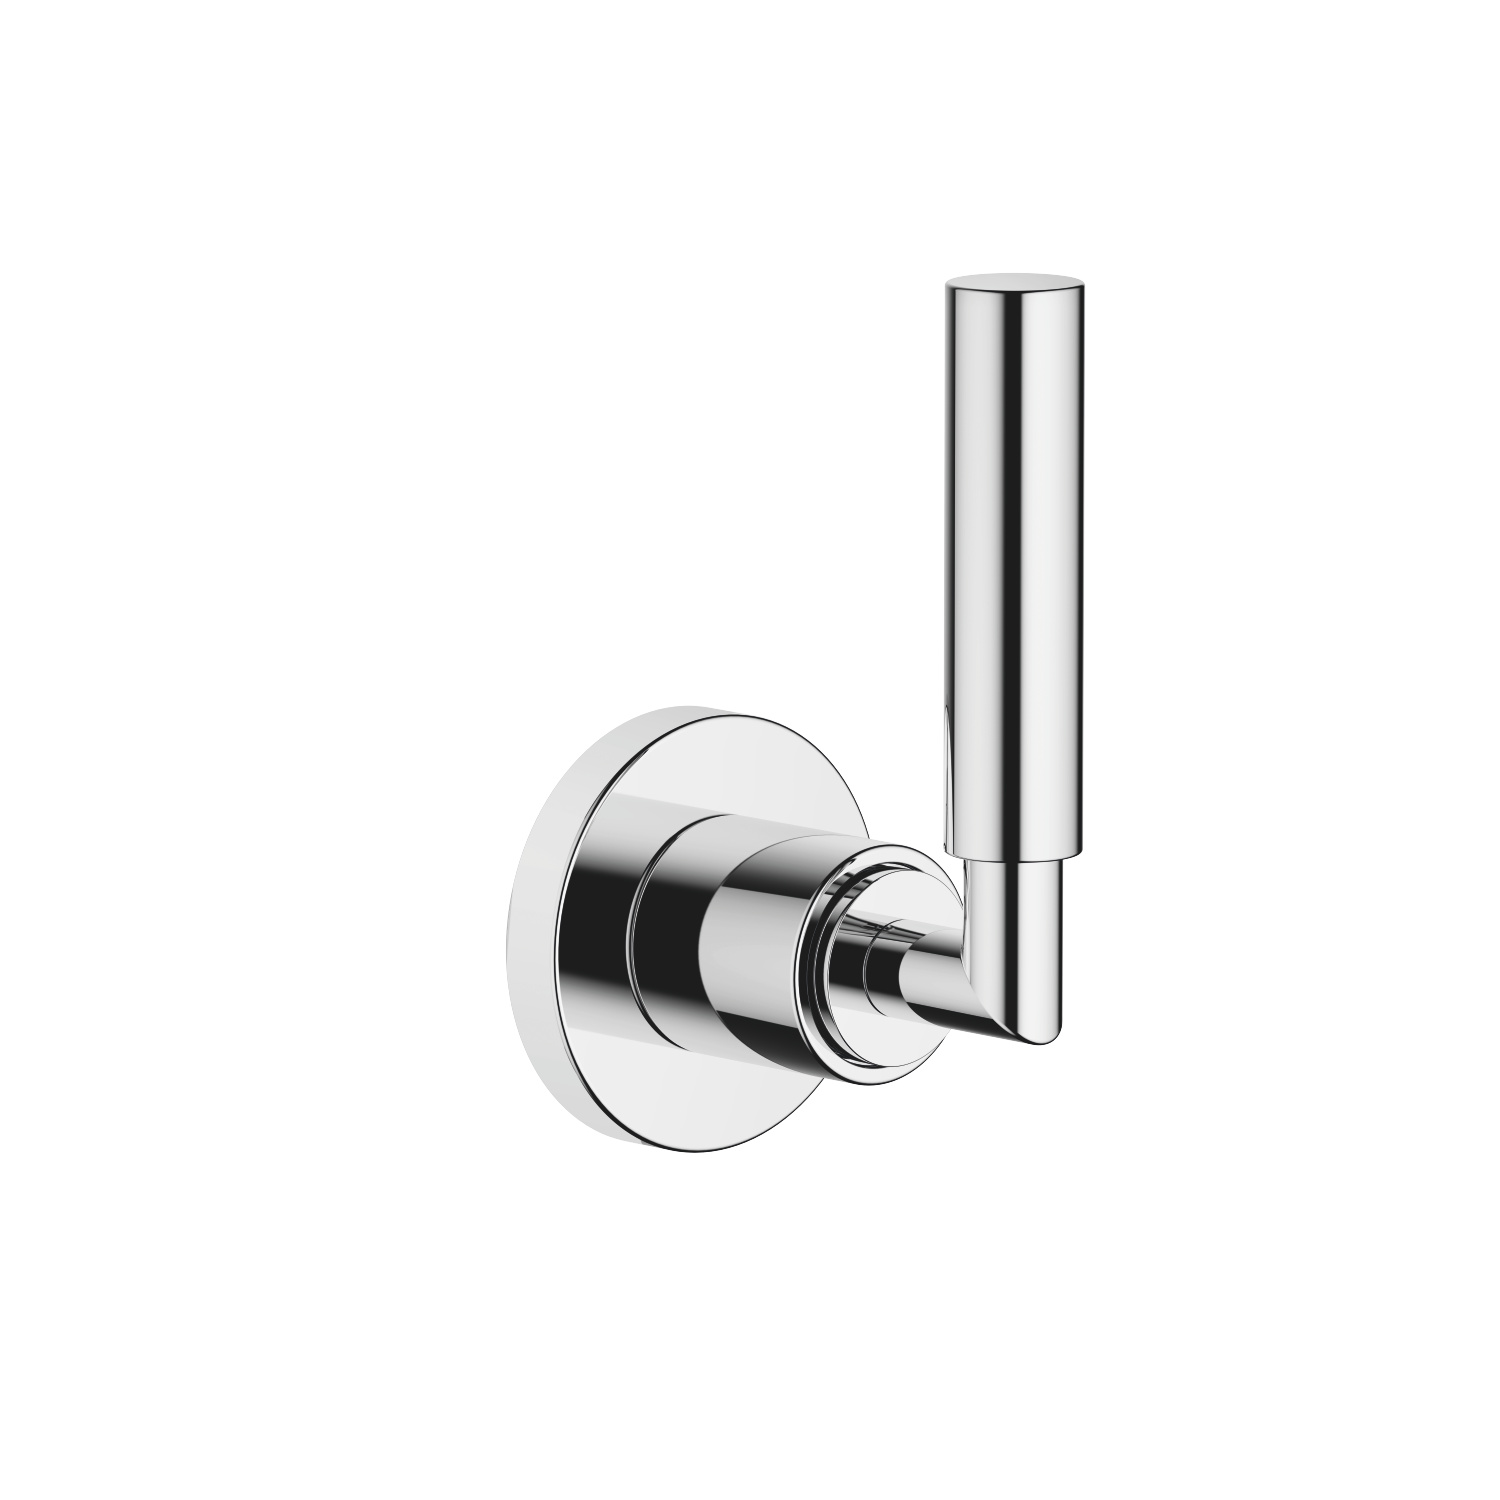 "Wall valve clockwise closing 3/4"" - polished chrome"